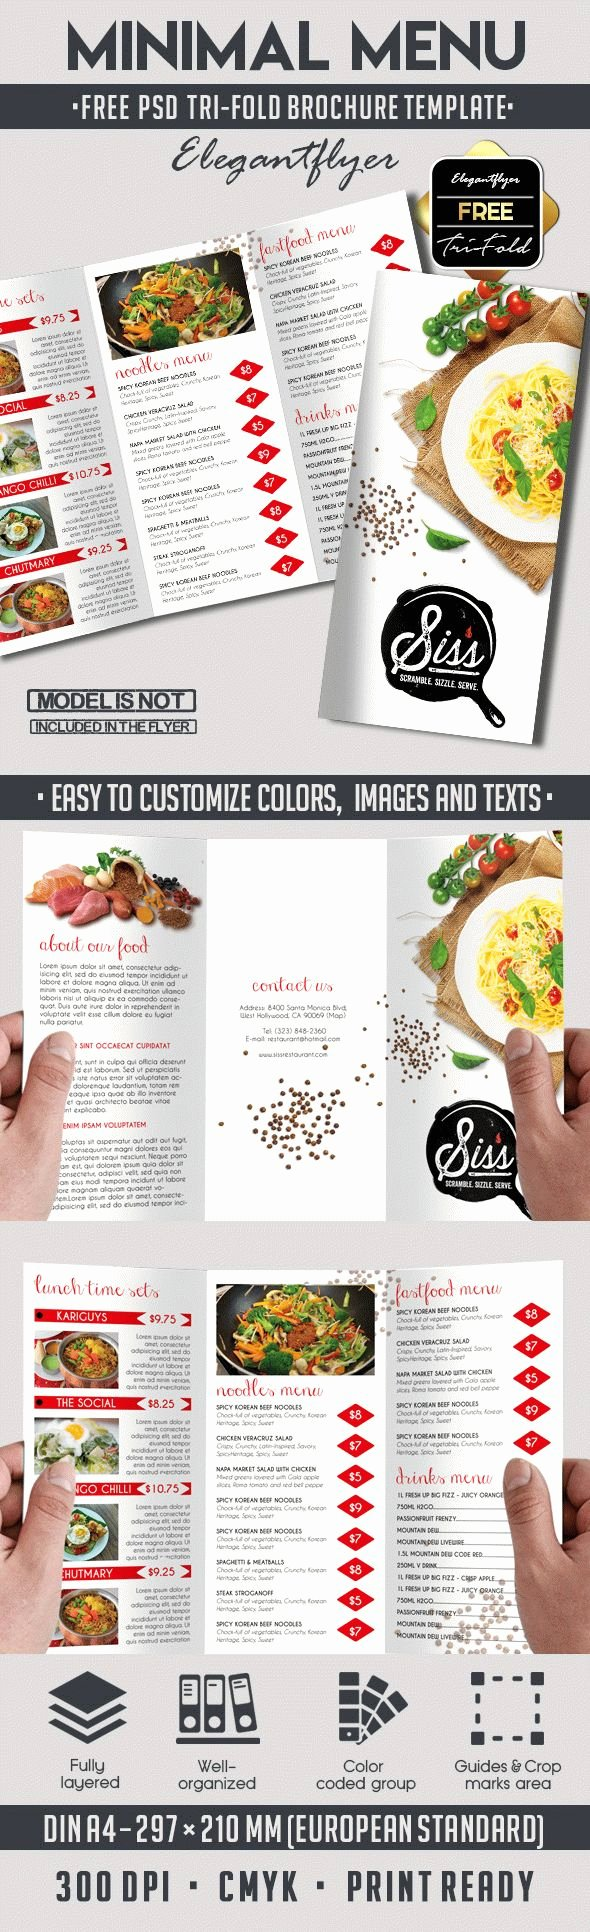 Free Psd Brochure for Minimal Menu – by Elegantflyer